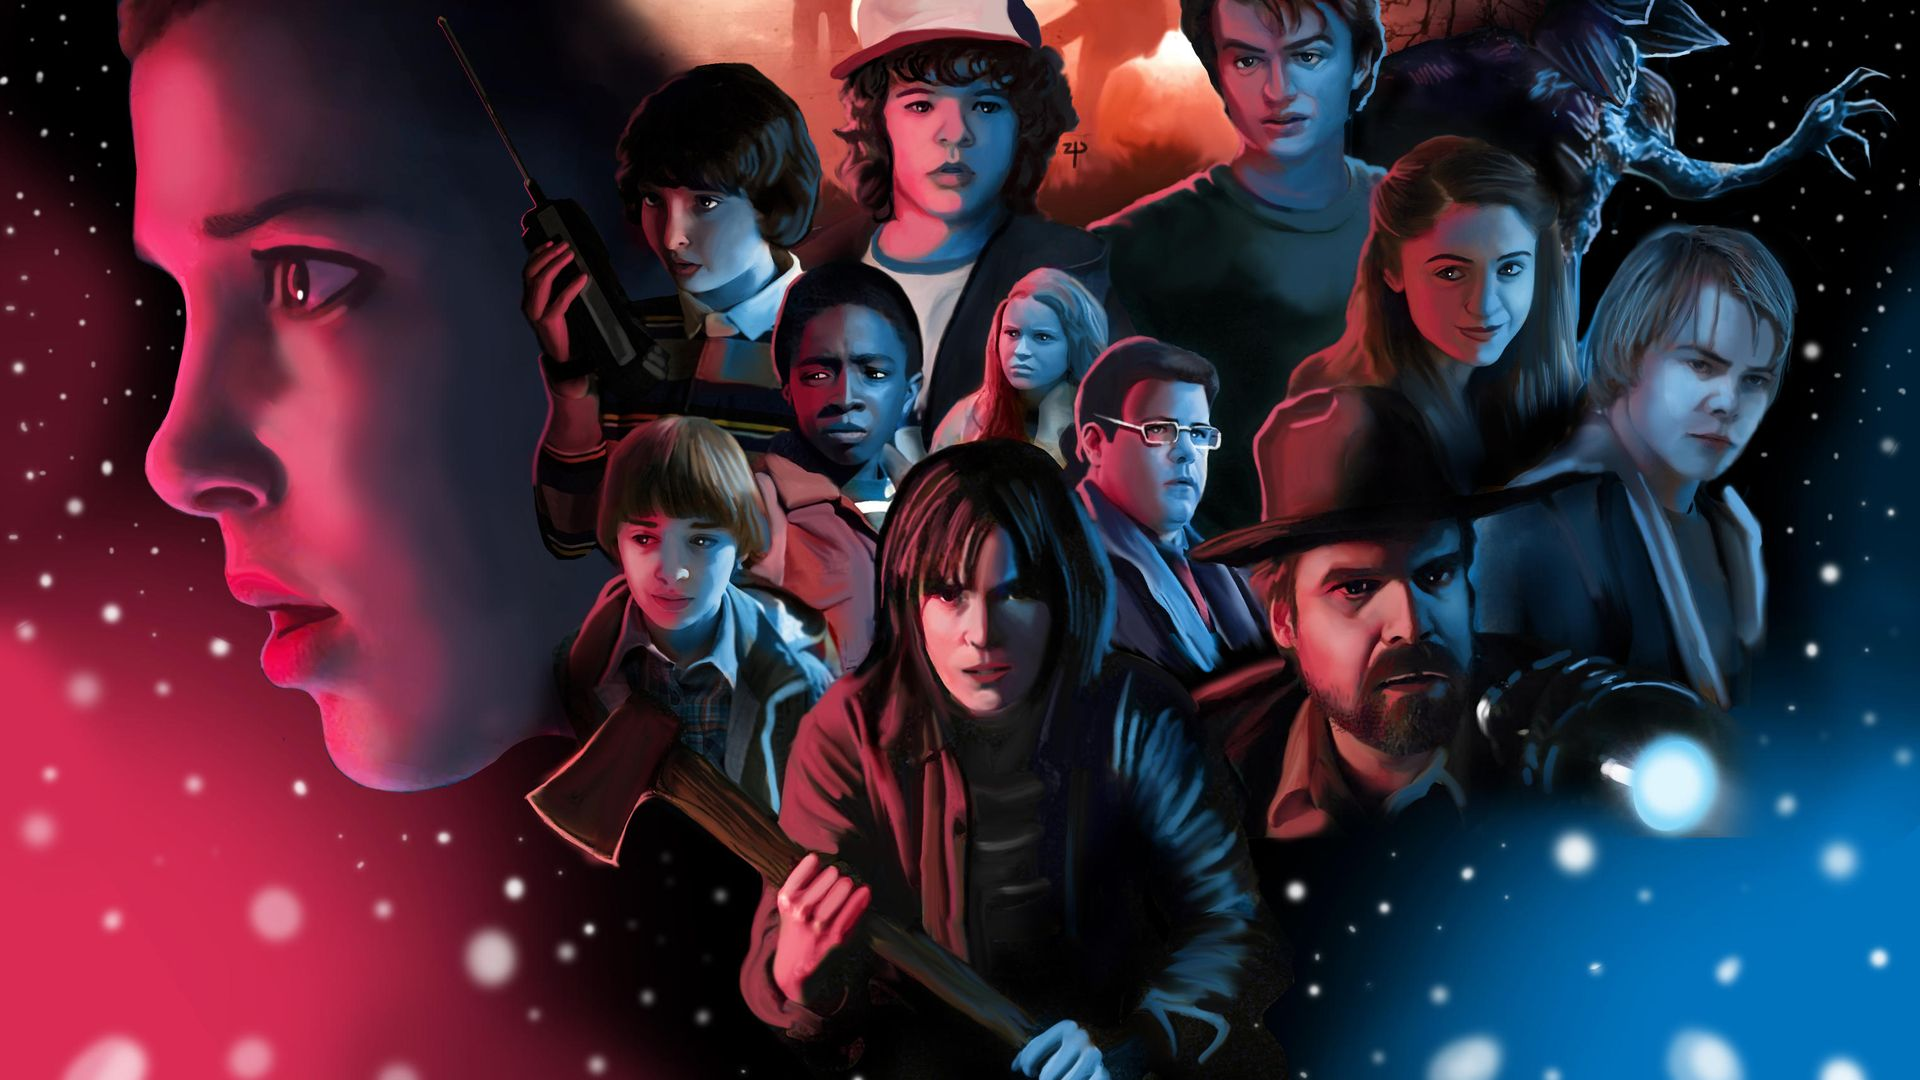 Stranger Things Season 3 Wallpapers Top Free Stranger